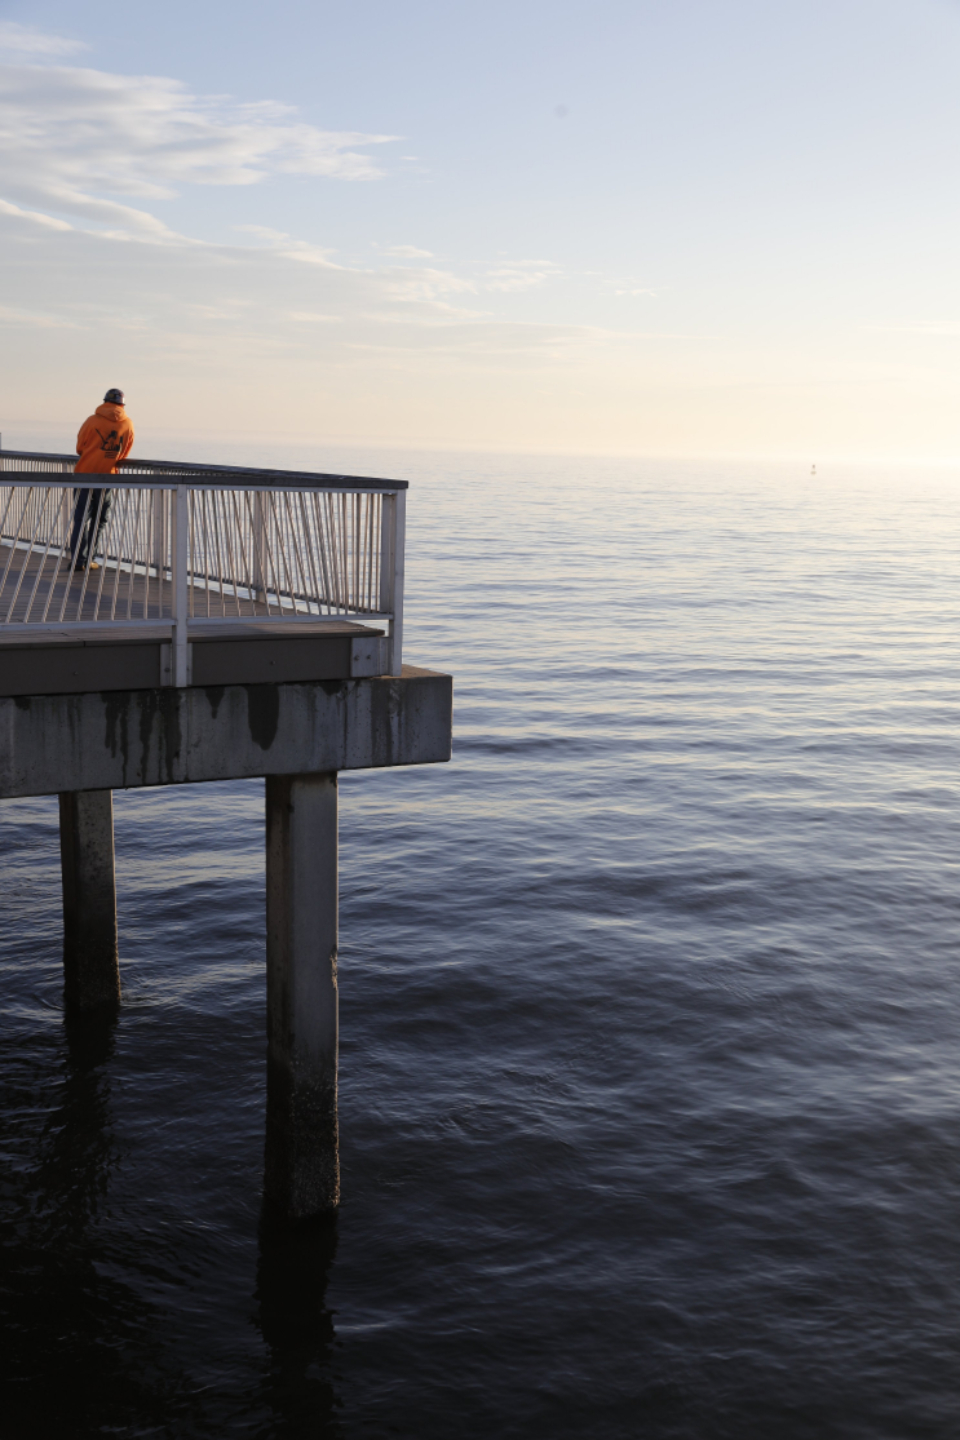 pier man ocean sea seascape sunlight sky waves solo male standing dock water lonely outdoors peaceful